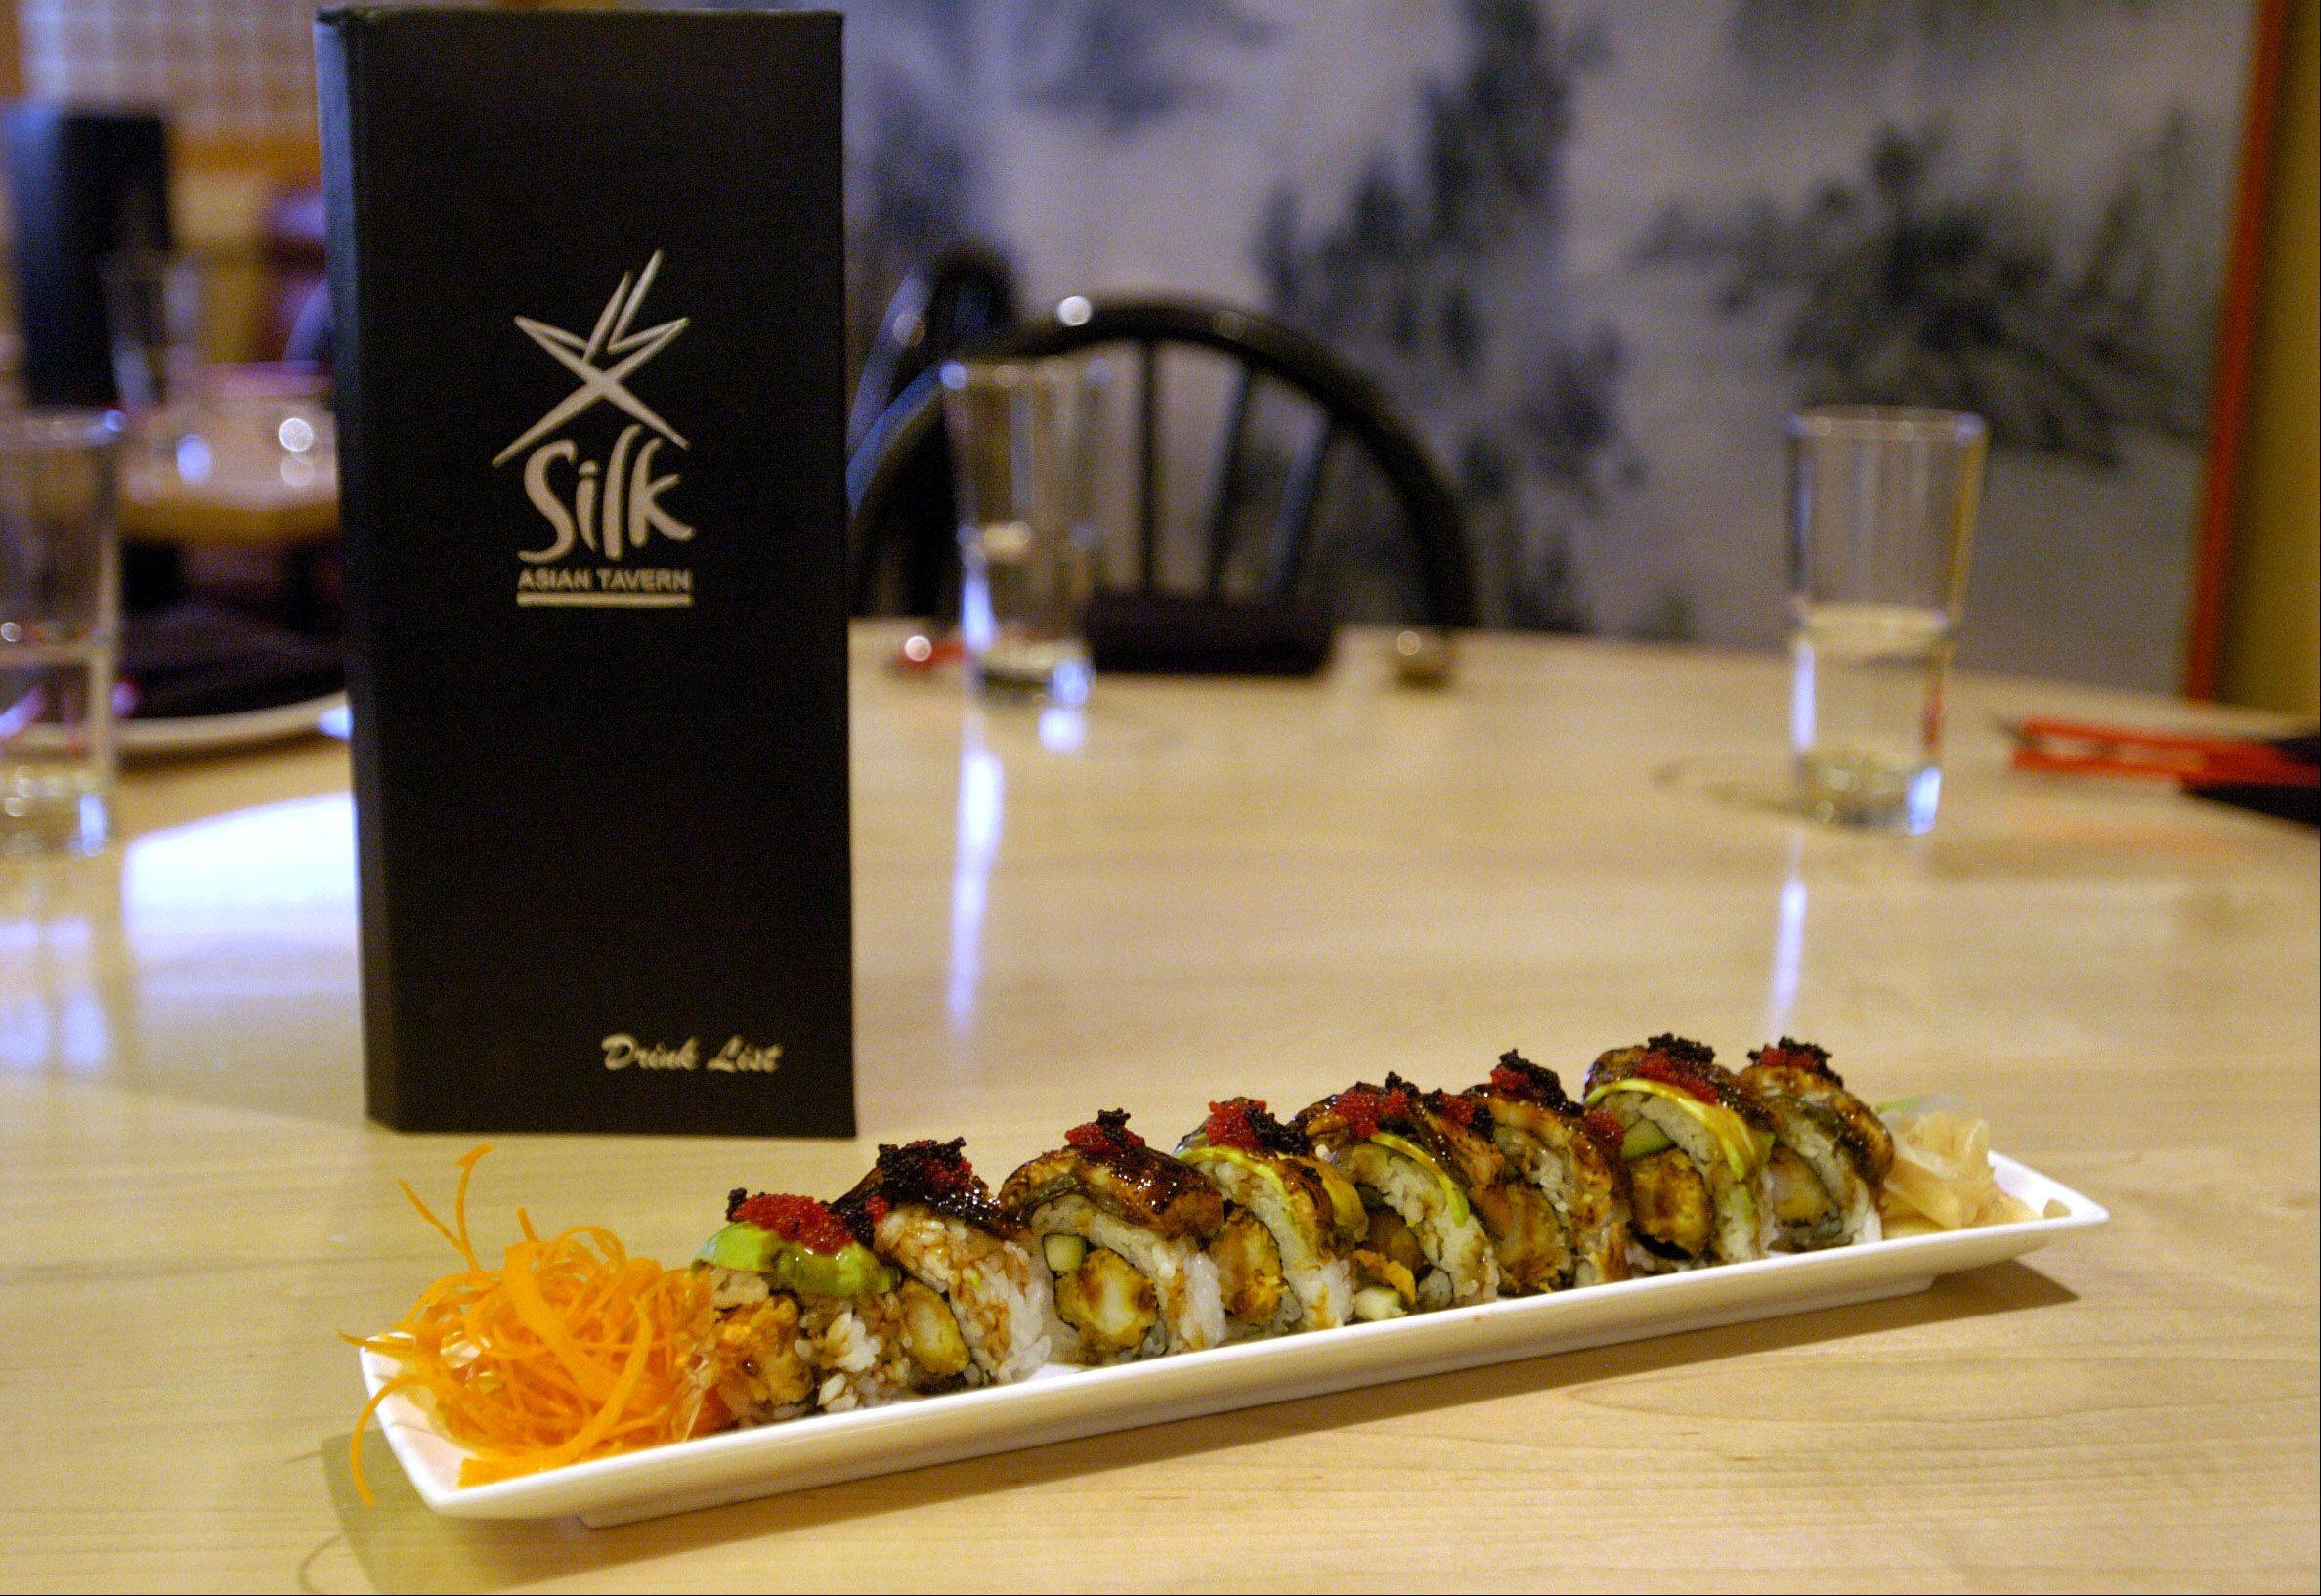 Unagi Maki at Silk Asian Tavern in Vernon Hills.